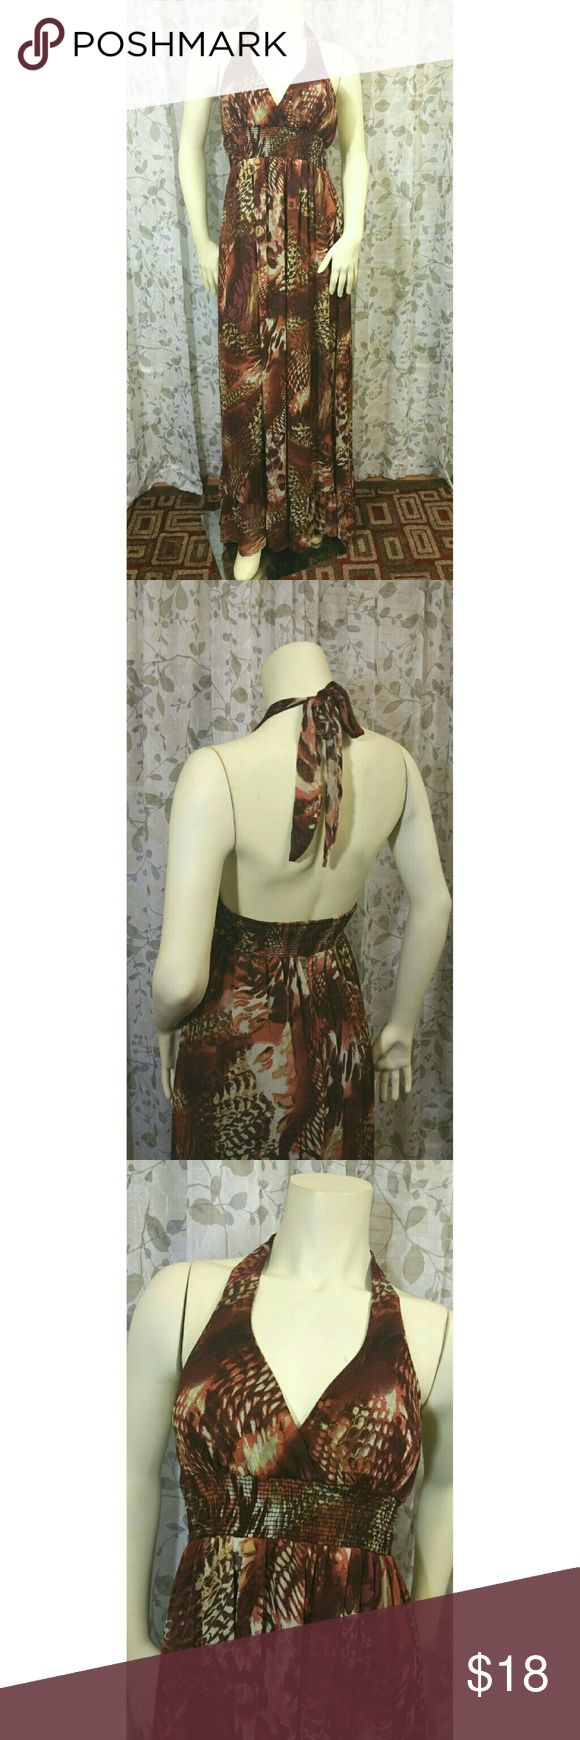 Pretty Long Dress This pretty long dress features an elastic waist, ties around the neck with back out. This fully lined dress has a beautiful animal print. Size Large. Length 56 in. Like new condition. Xhilaration Dresses Backless